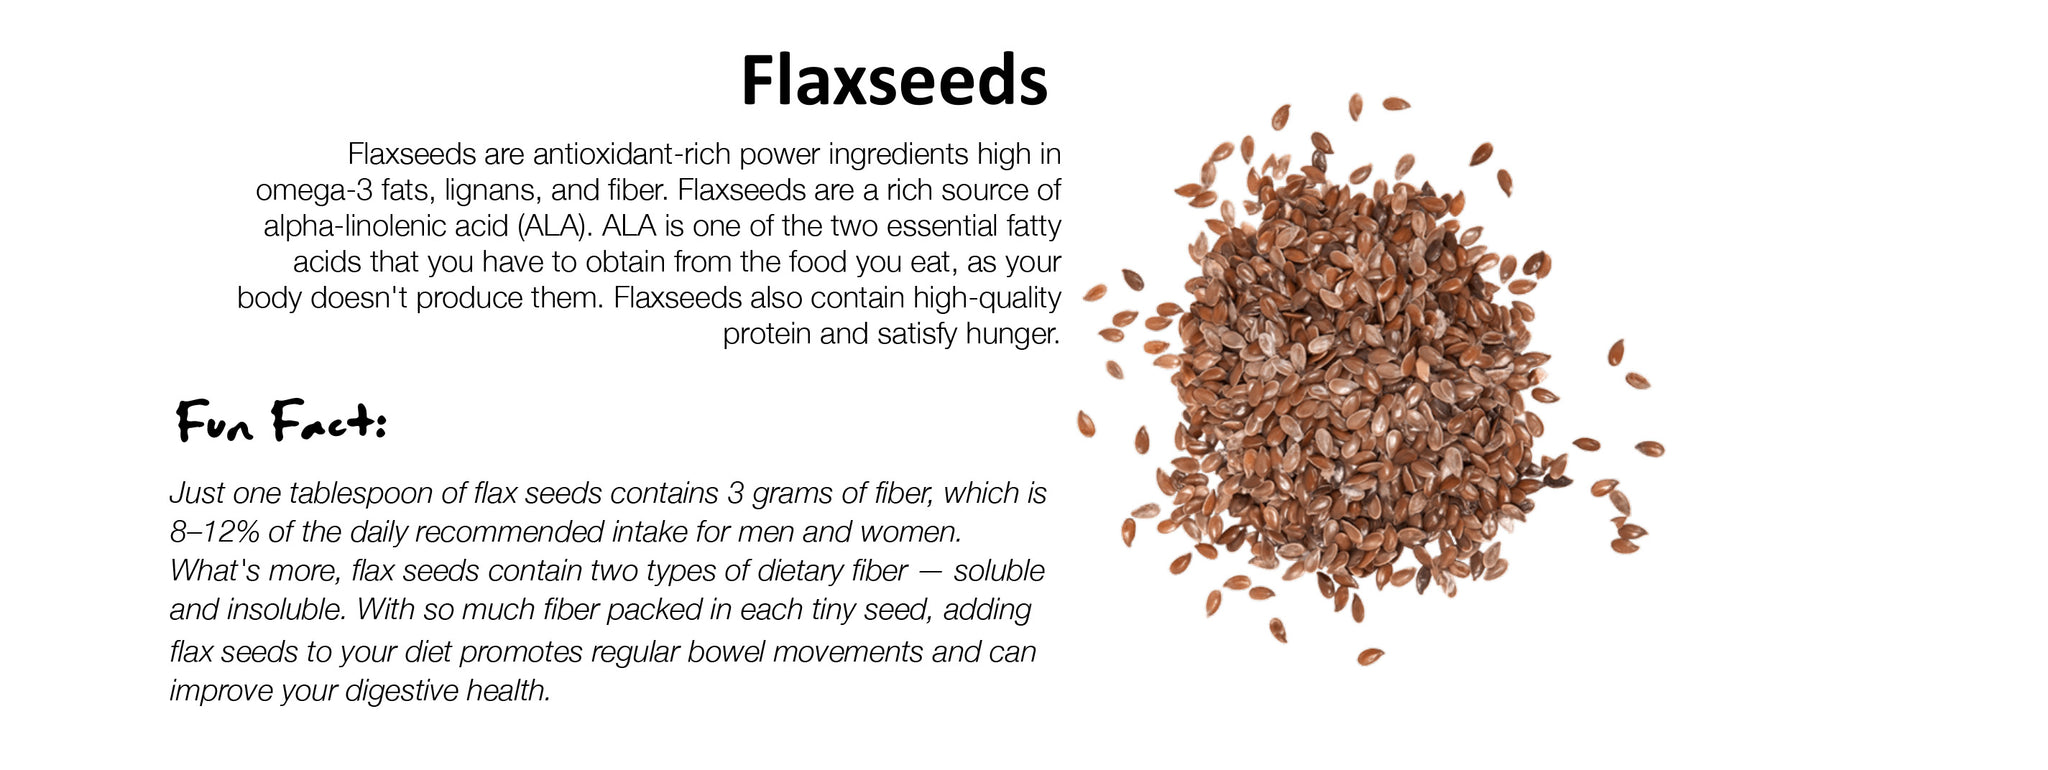 Flaxseeds Flaxseeds are antioxidant-rich power ingredients high in omega-3 fats, lignans, and fiber. Flaxseeds are a rich source of alpha-linolenic acid (ALA). ALA is one of the two essential fatty acids that you have to obtain from the food you eat, as your body doesn't produce them. Flaxseeds also contain high-quality protein and satisfy hunger.